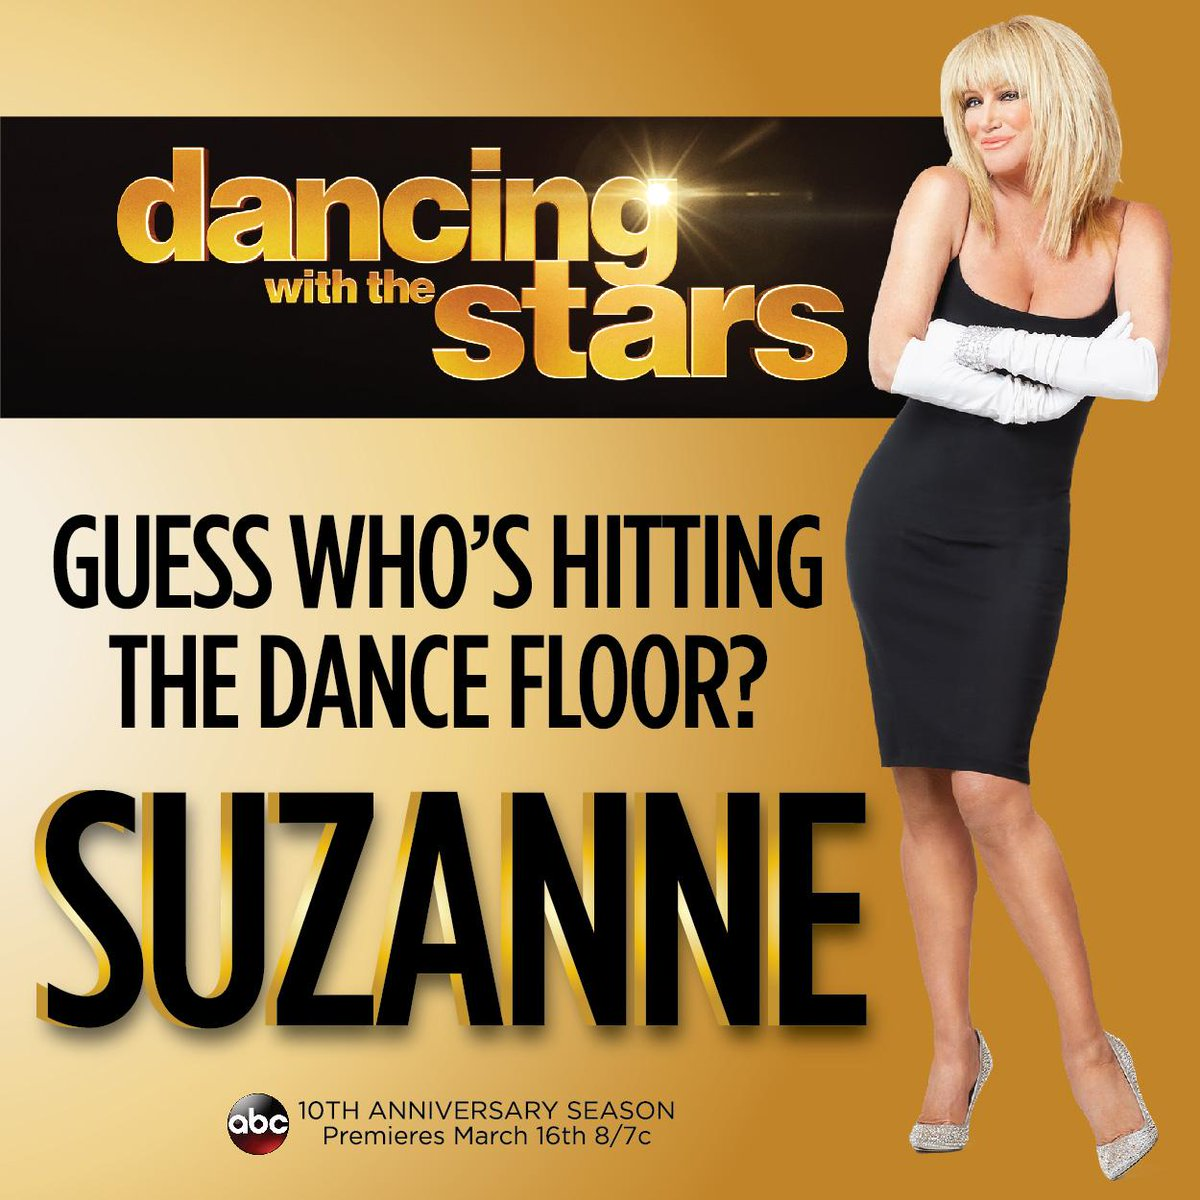 I'm THRILLED to announce I will be on @DancingABC for their 10th Anniversary Year! Wish me luck! #GMADancing #DWTS20 http://t.co/FdeCV3UgDj